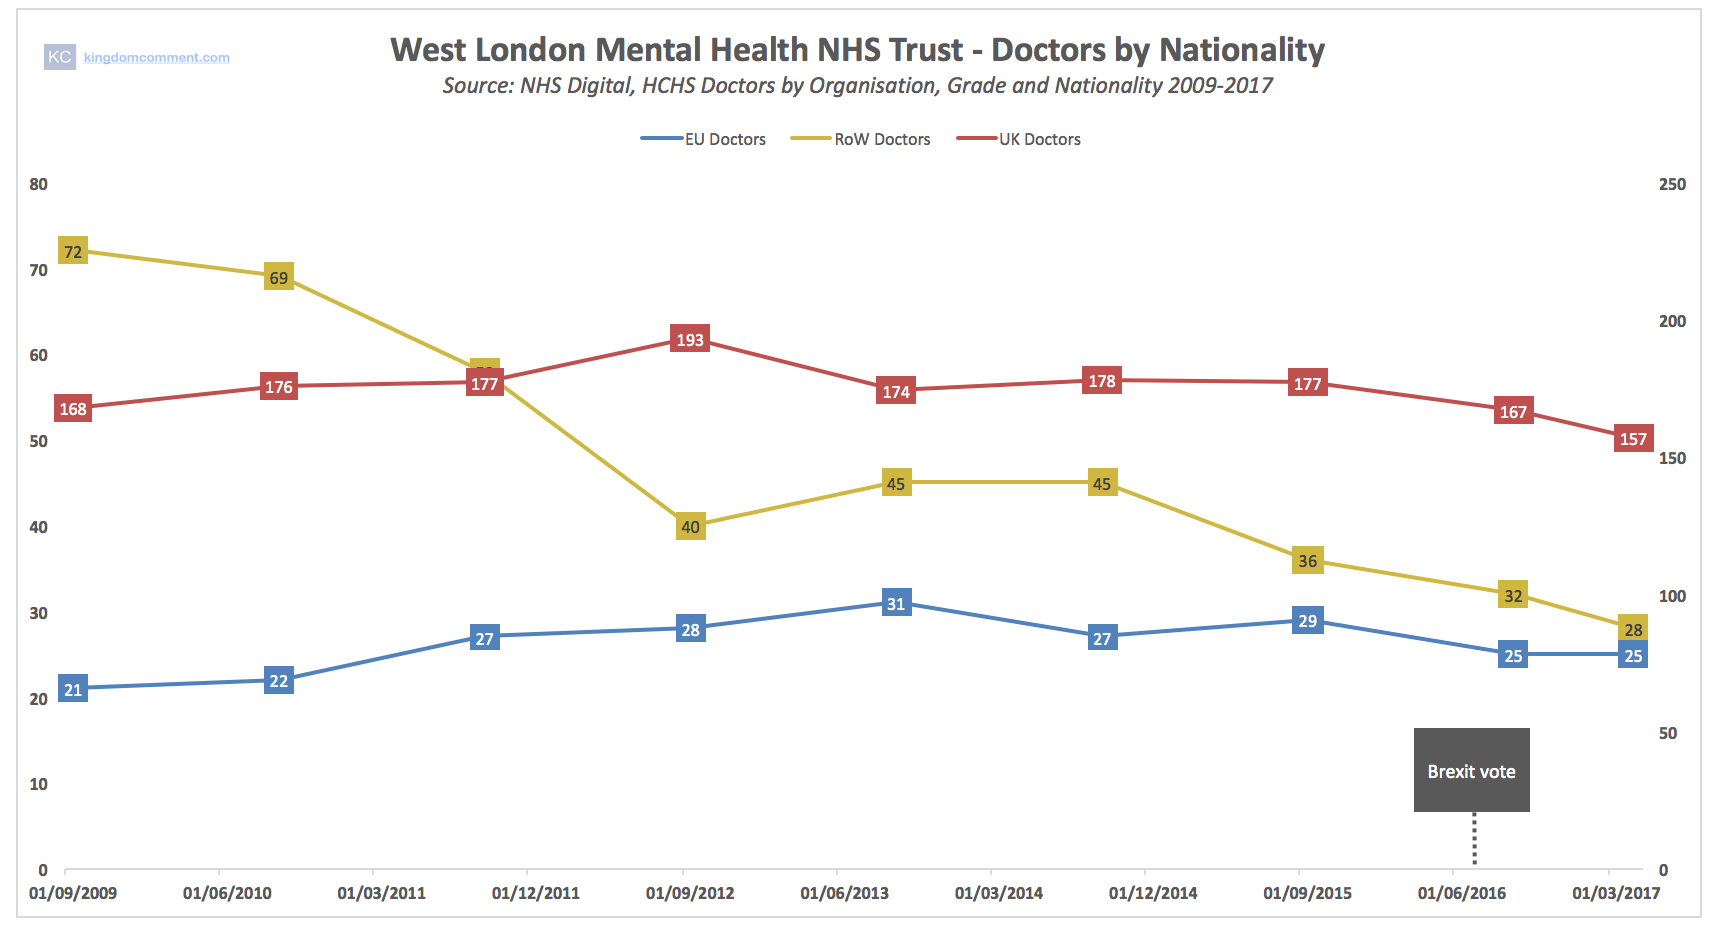 WLMHT Doctors All Nationalities